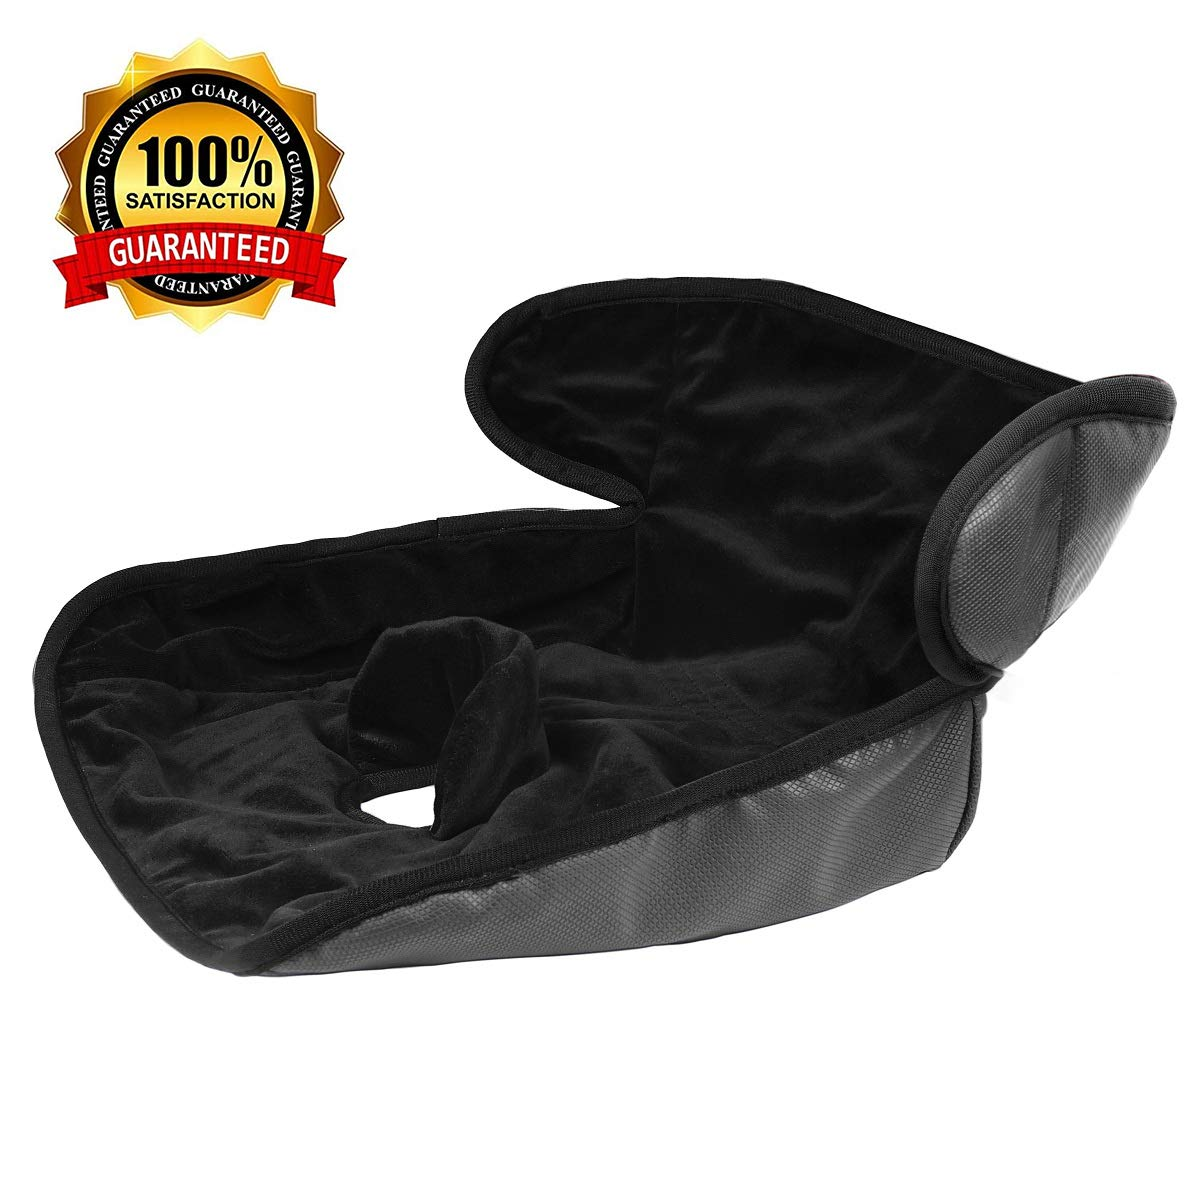 INFANZIA Piddle Pad Car Seat Protector - Car Seat Saver Waterproof Liner for Potty Training Toddlers, Baby and Infants, Safety Certified Leak Free Pad for Carseats Strollers, Machine Wash and Dry by INFANZIA